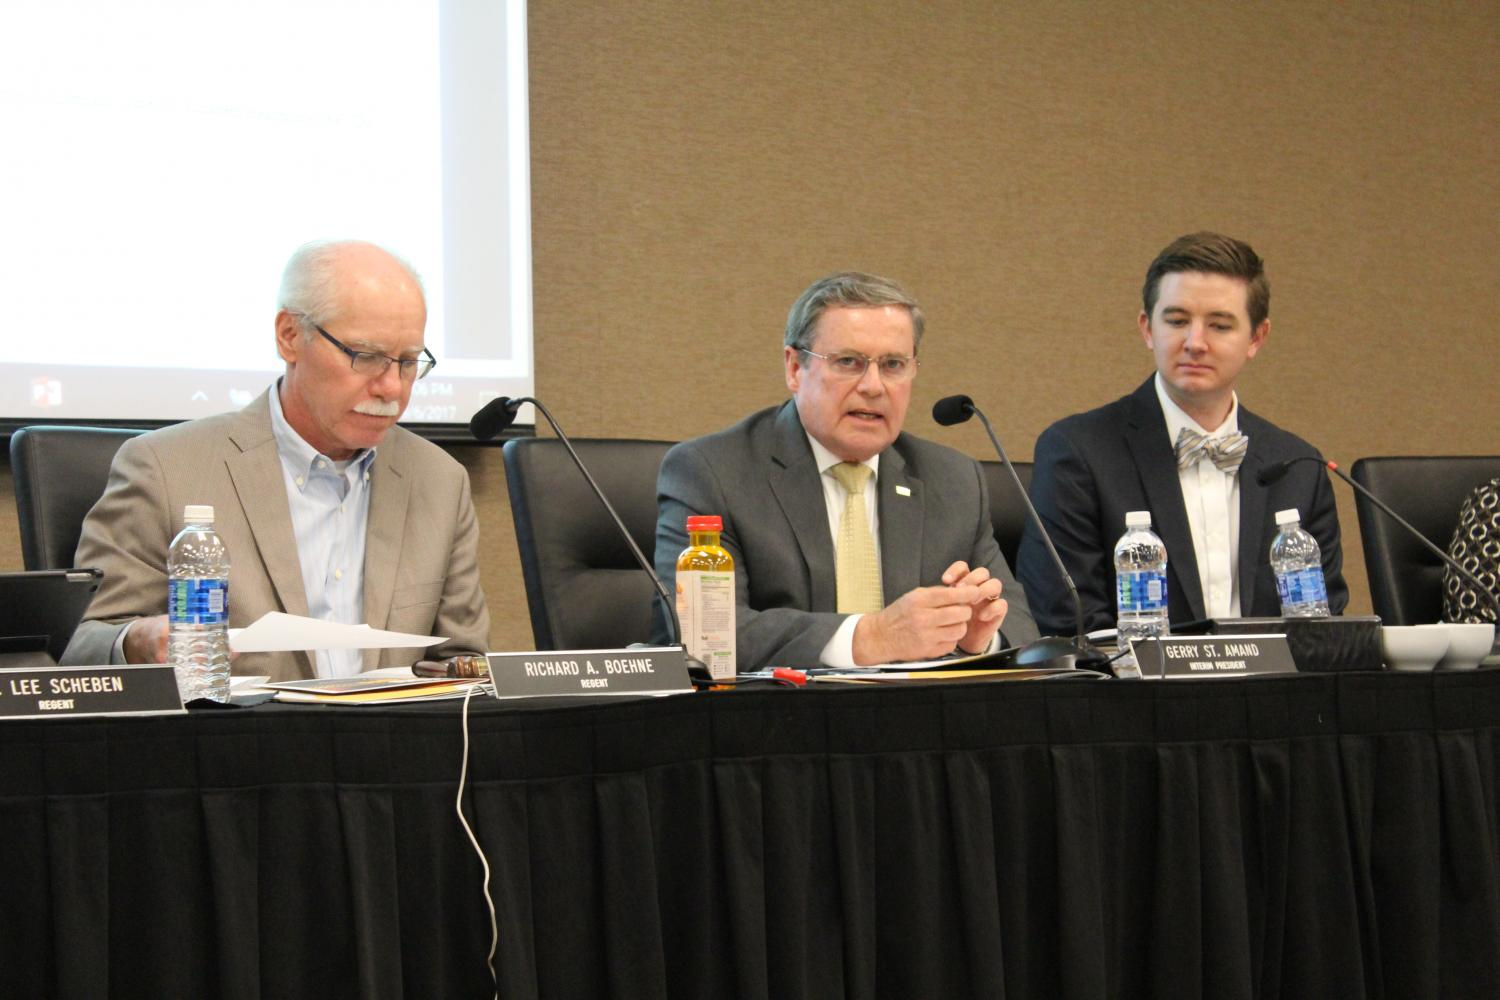 Gerard St. Amand, center, at a Board of Regents meeting Sept. 6. A bill passed April 26 that freezes NKUs pension contribution rate for one year.